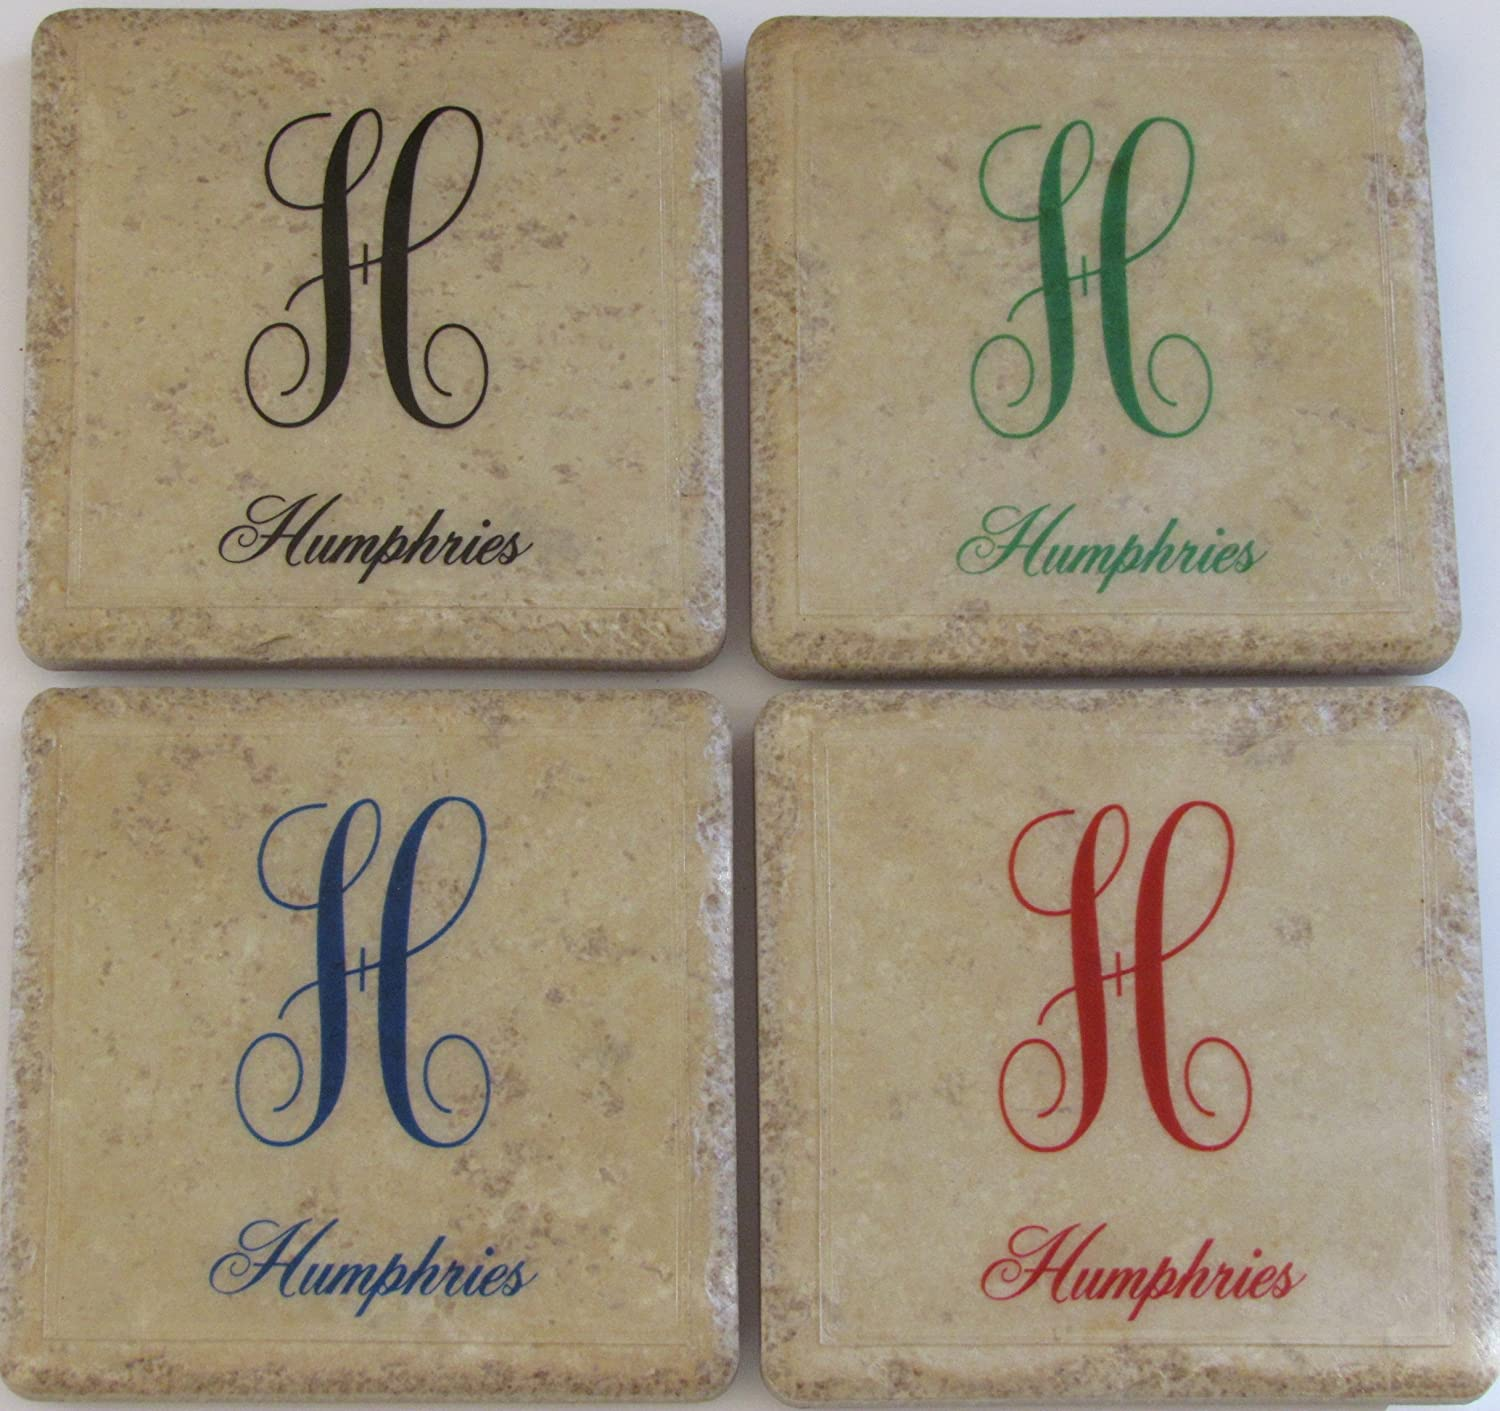 Personalized Coasters - Initial & Name - Set of 4 - Monogram Coasters - Stone Coasters - Drink Coasters - Wedding Coasters - Tile Coasters - Coaster Set - Anniversary Coasters - Marble Coasters